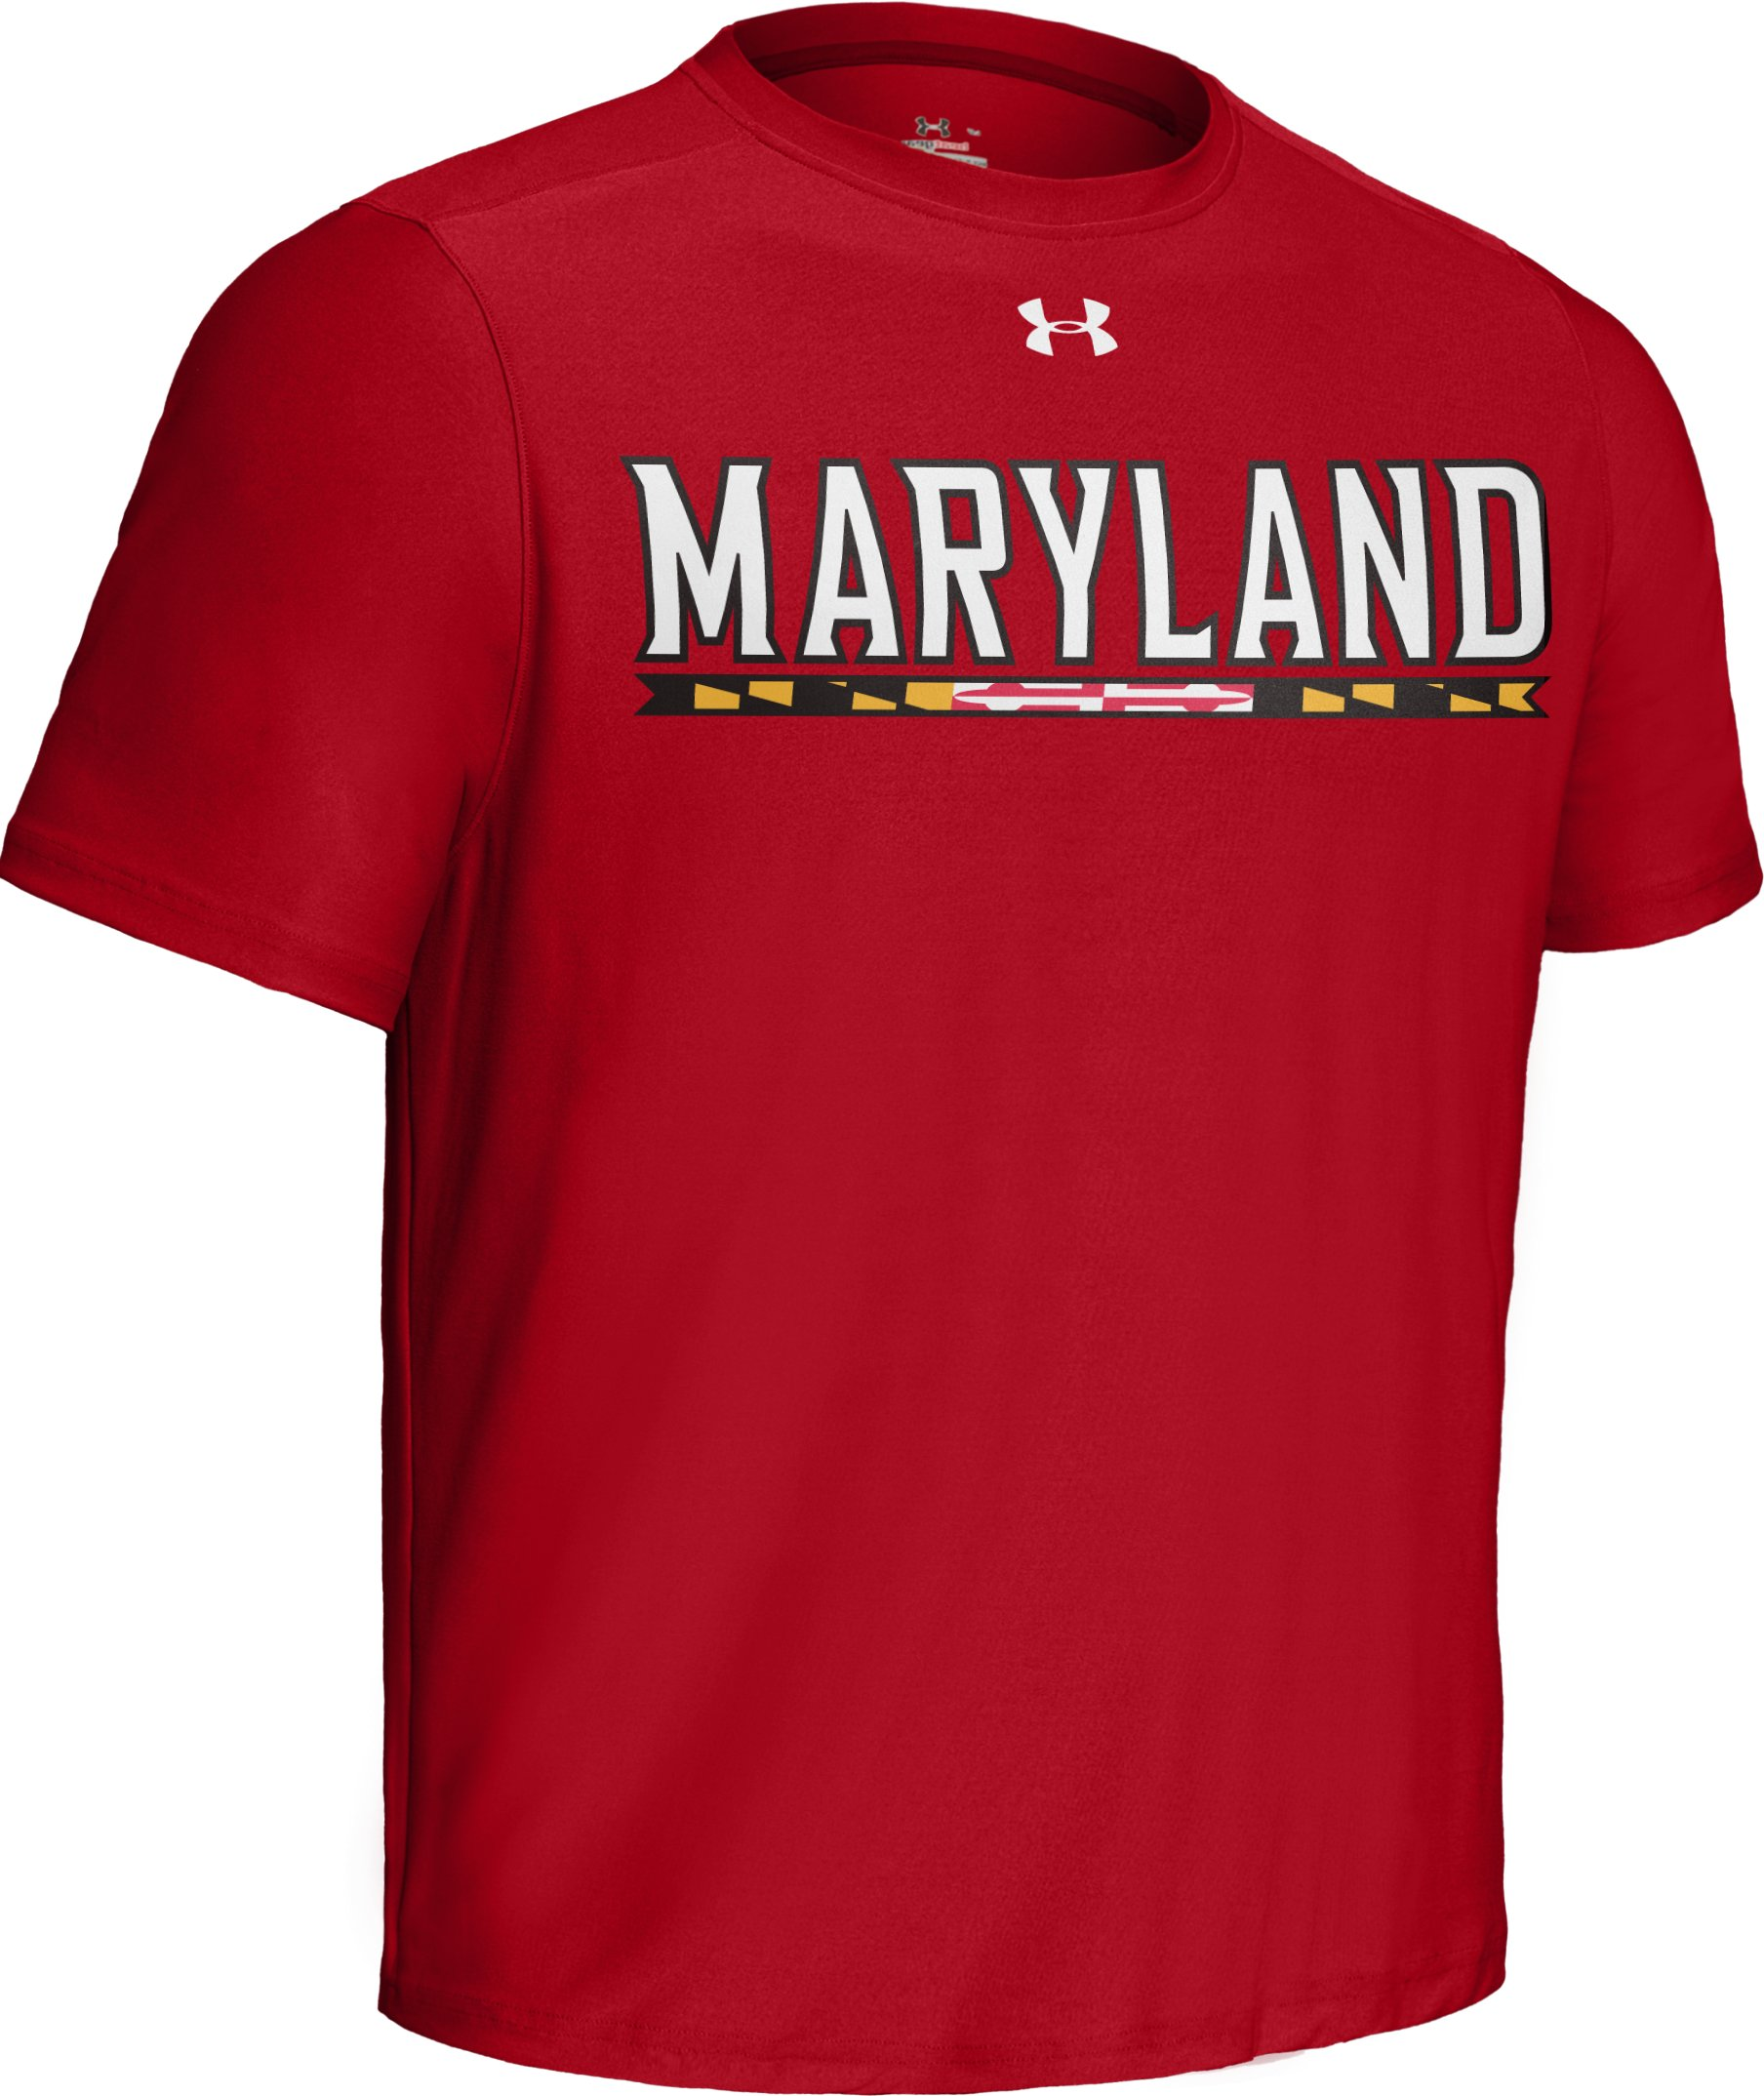 Men's Maryland Represent Graphic T-Shirt, Red, undefined